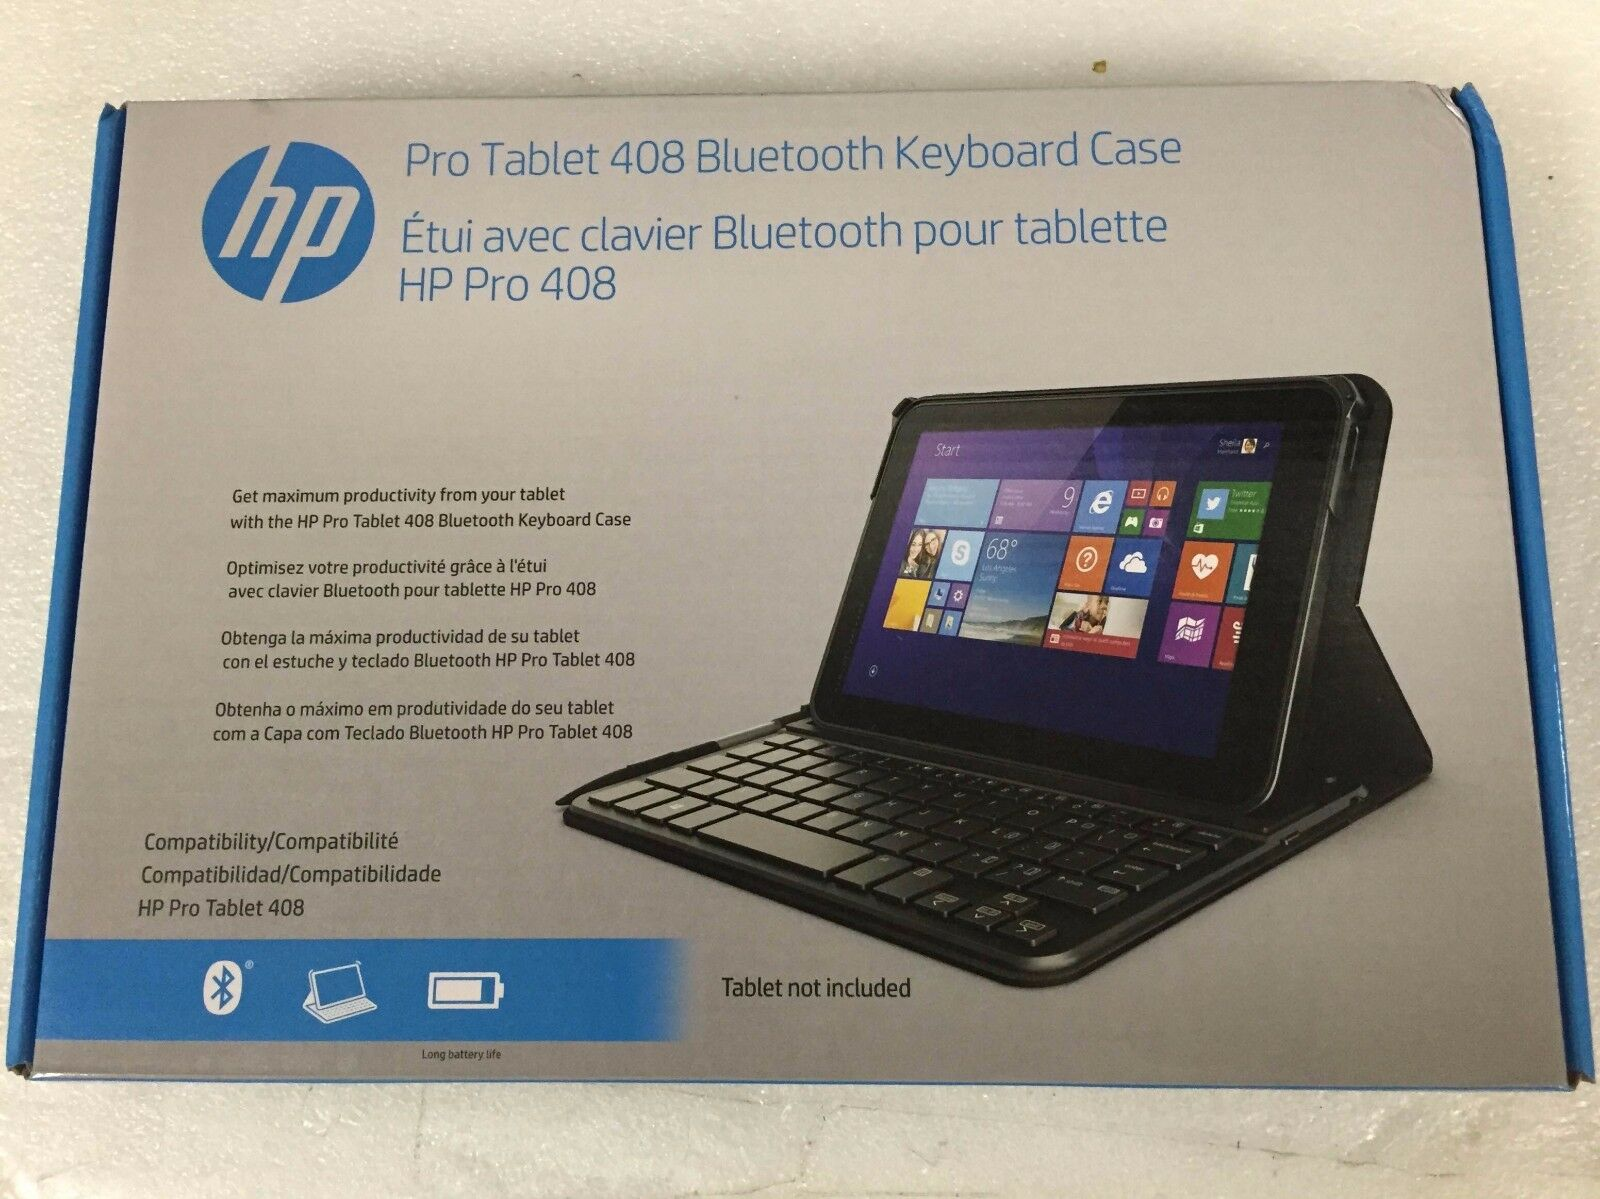 K8p76aaabl - Hp Pro Tablet 408 Bluetooth Keyboard & Folio...